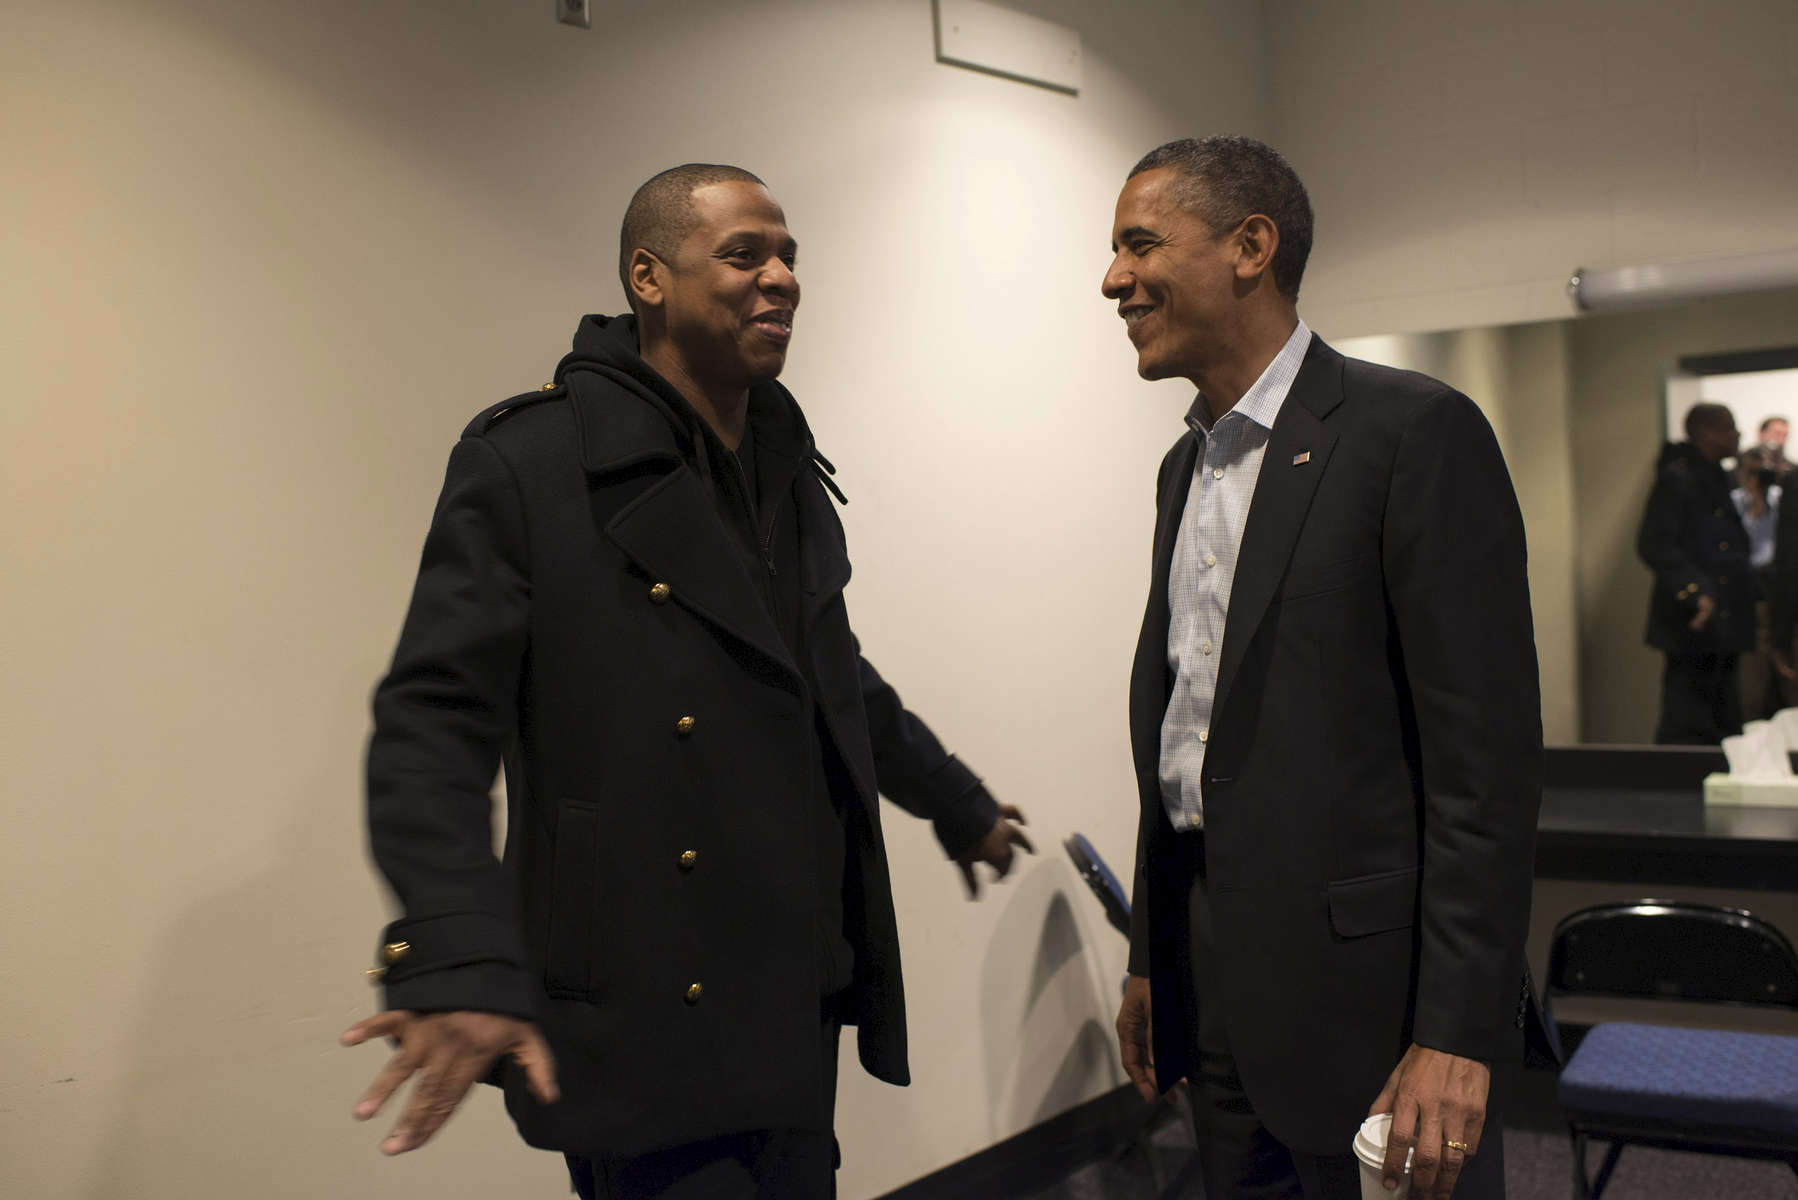 November 5, 2012  - Columbus, OH: President Barack Obama chats backstage with rapper and mogul Jay-Z before a rally in Columbus, OH.  (Scout Tufankjian for Obama for America/Polaris)